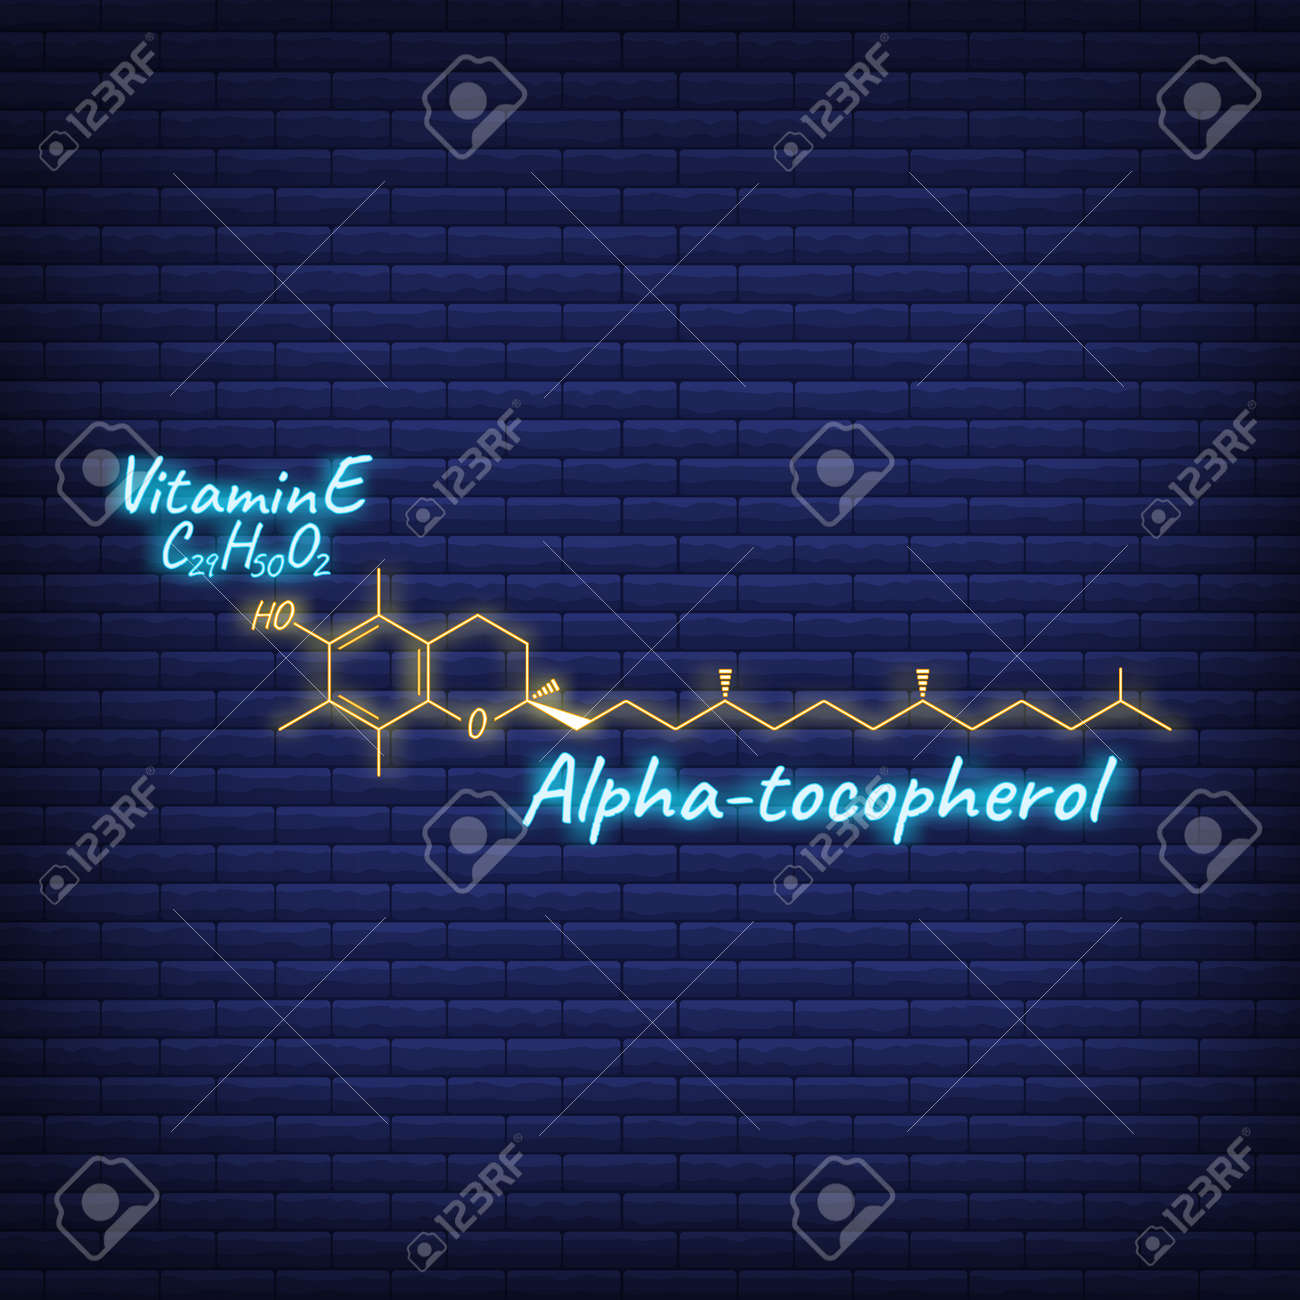 Vitamin E, Alpha Tocopherol Label and Icon glow neon style. Vector Illustration isolated on wall background. Chemical Formula and Structure. - 166412722